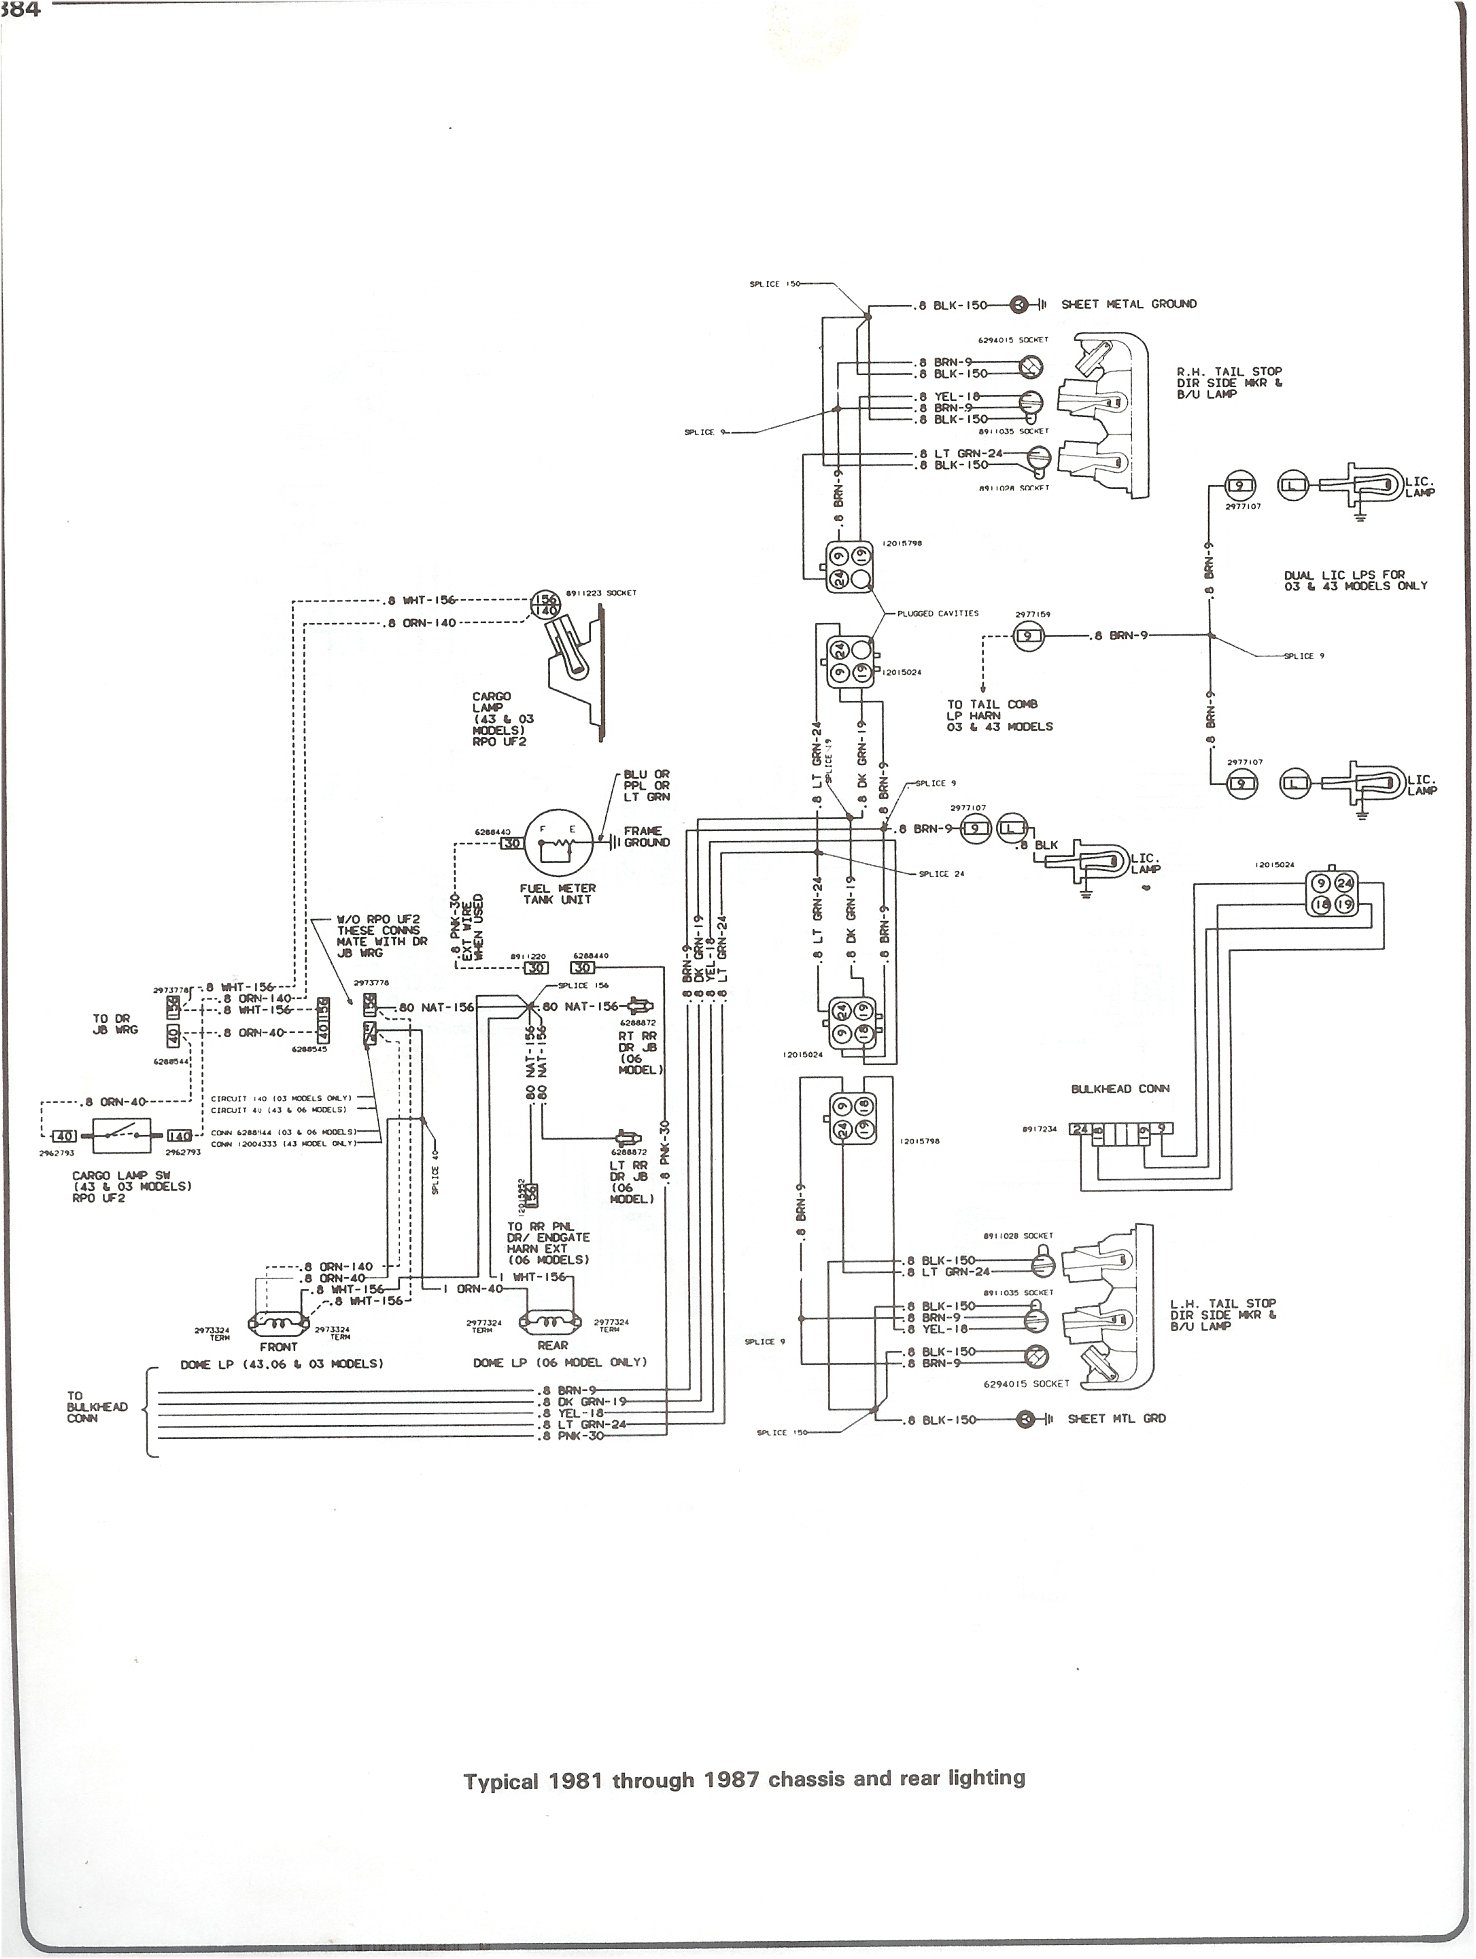 1977 Dodge Engine Wiring Diagram Will Be A Thing 1985 Honda Accord Chevy Silverado Drawing At Getdrawings Com Free For Alternator 85 Ram Ignition